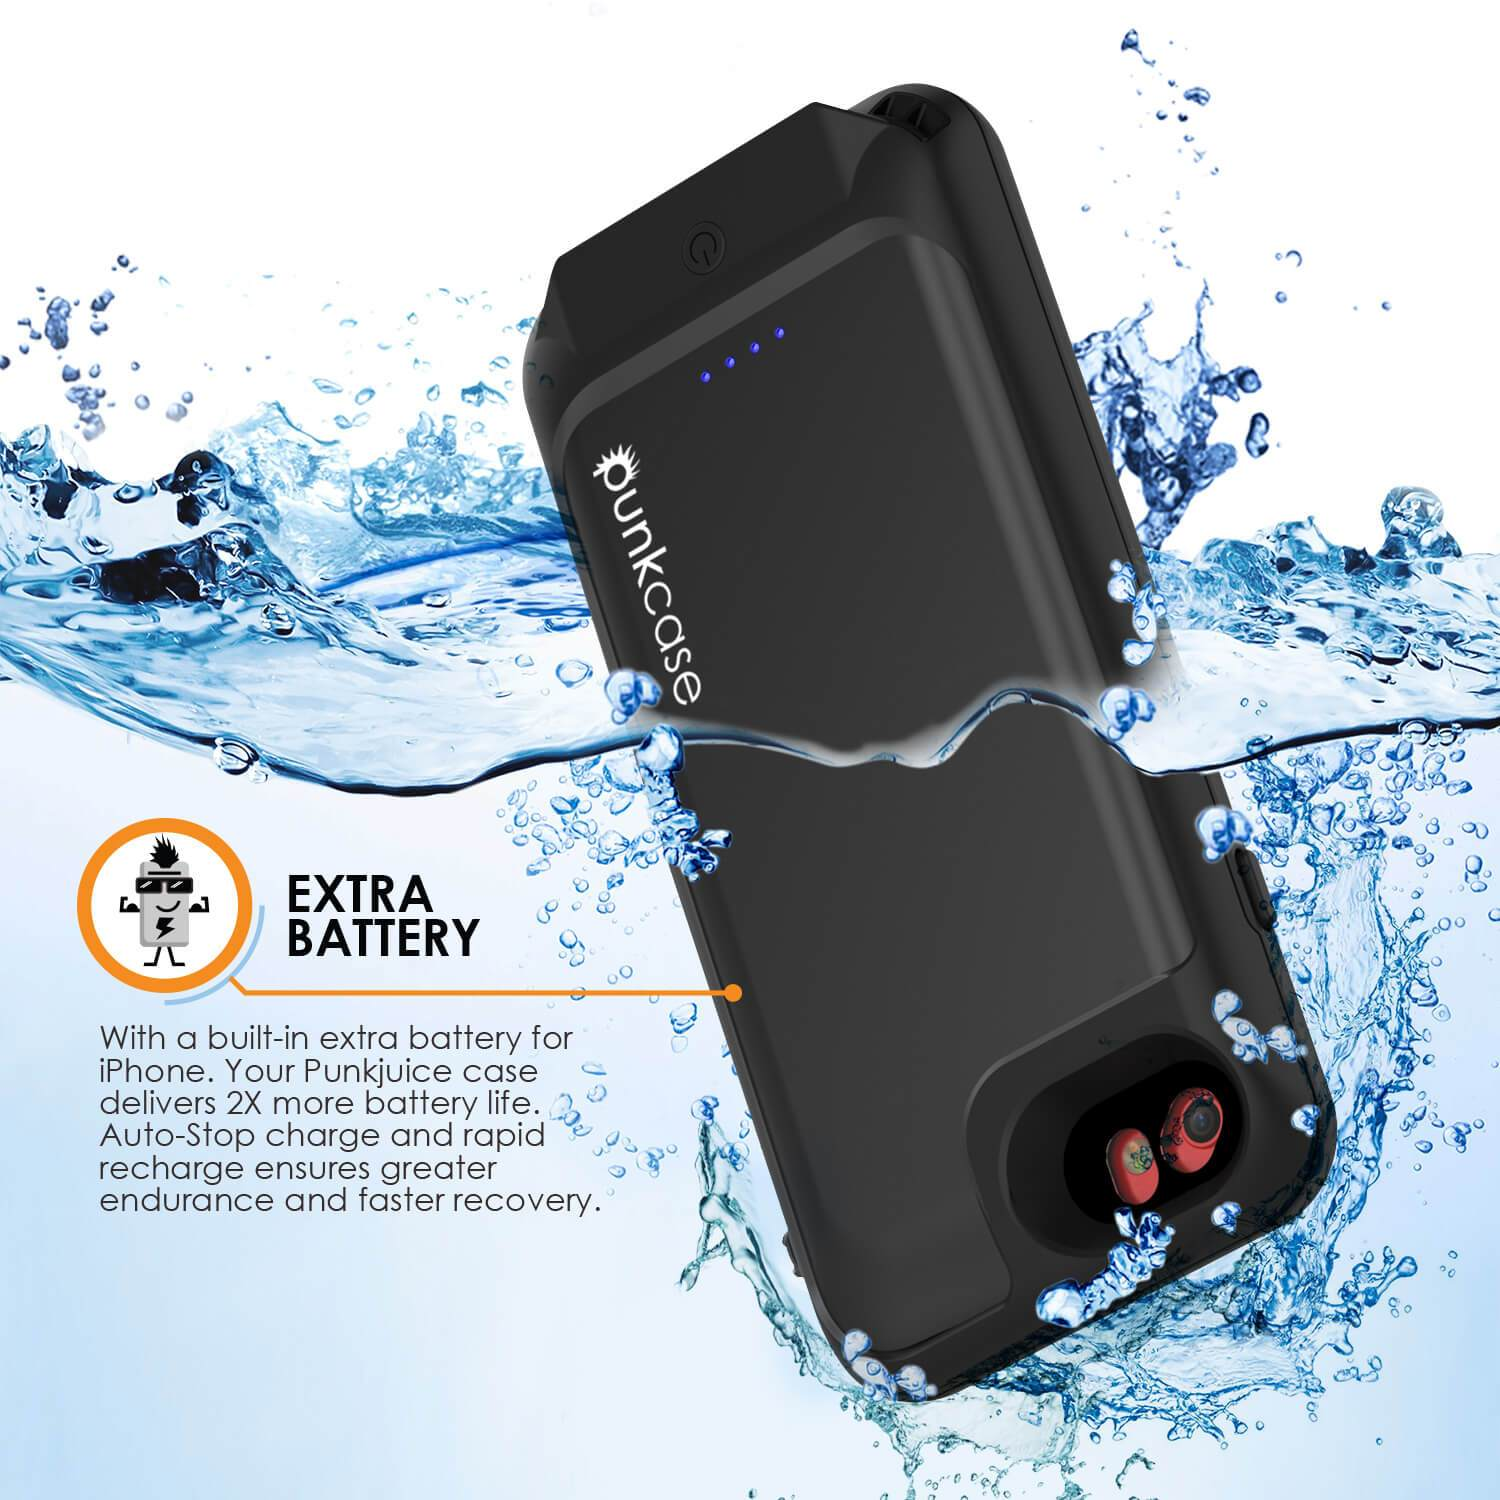 reputable site 86405 12f97 iPhone 6/6s Battery Case PunkJuice - Waterproof Slim Portable Power Juice  Bank with 2750mAh High Capacity (Jet Black)